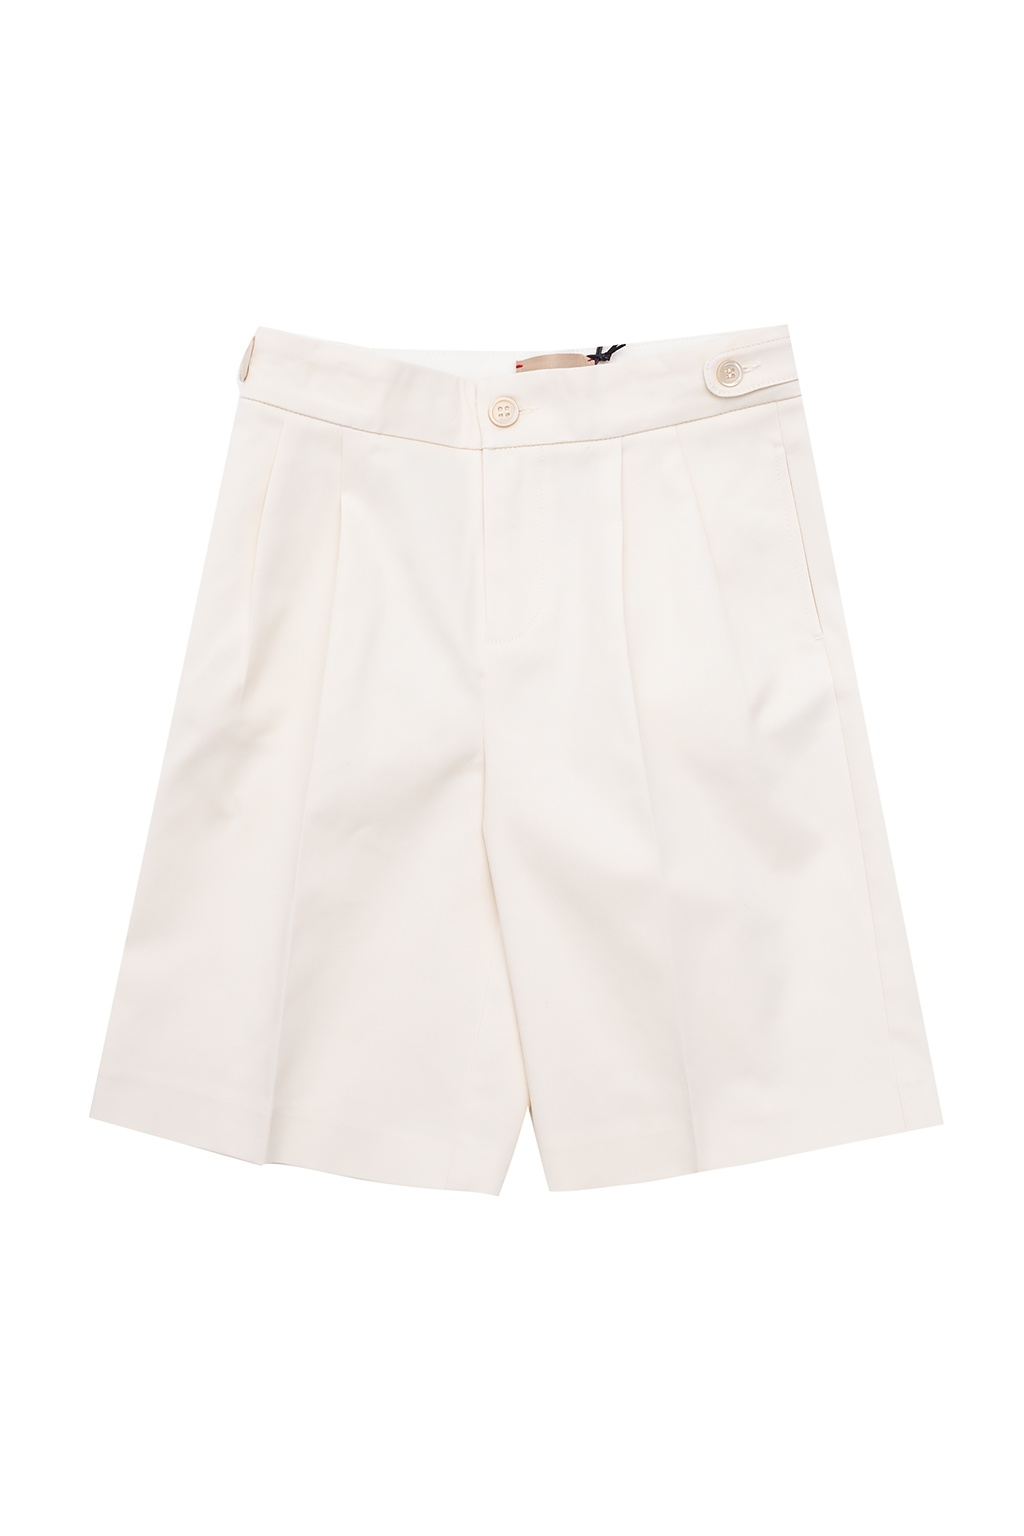 Gucci Kids Pleat-front shorts with logo